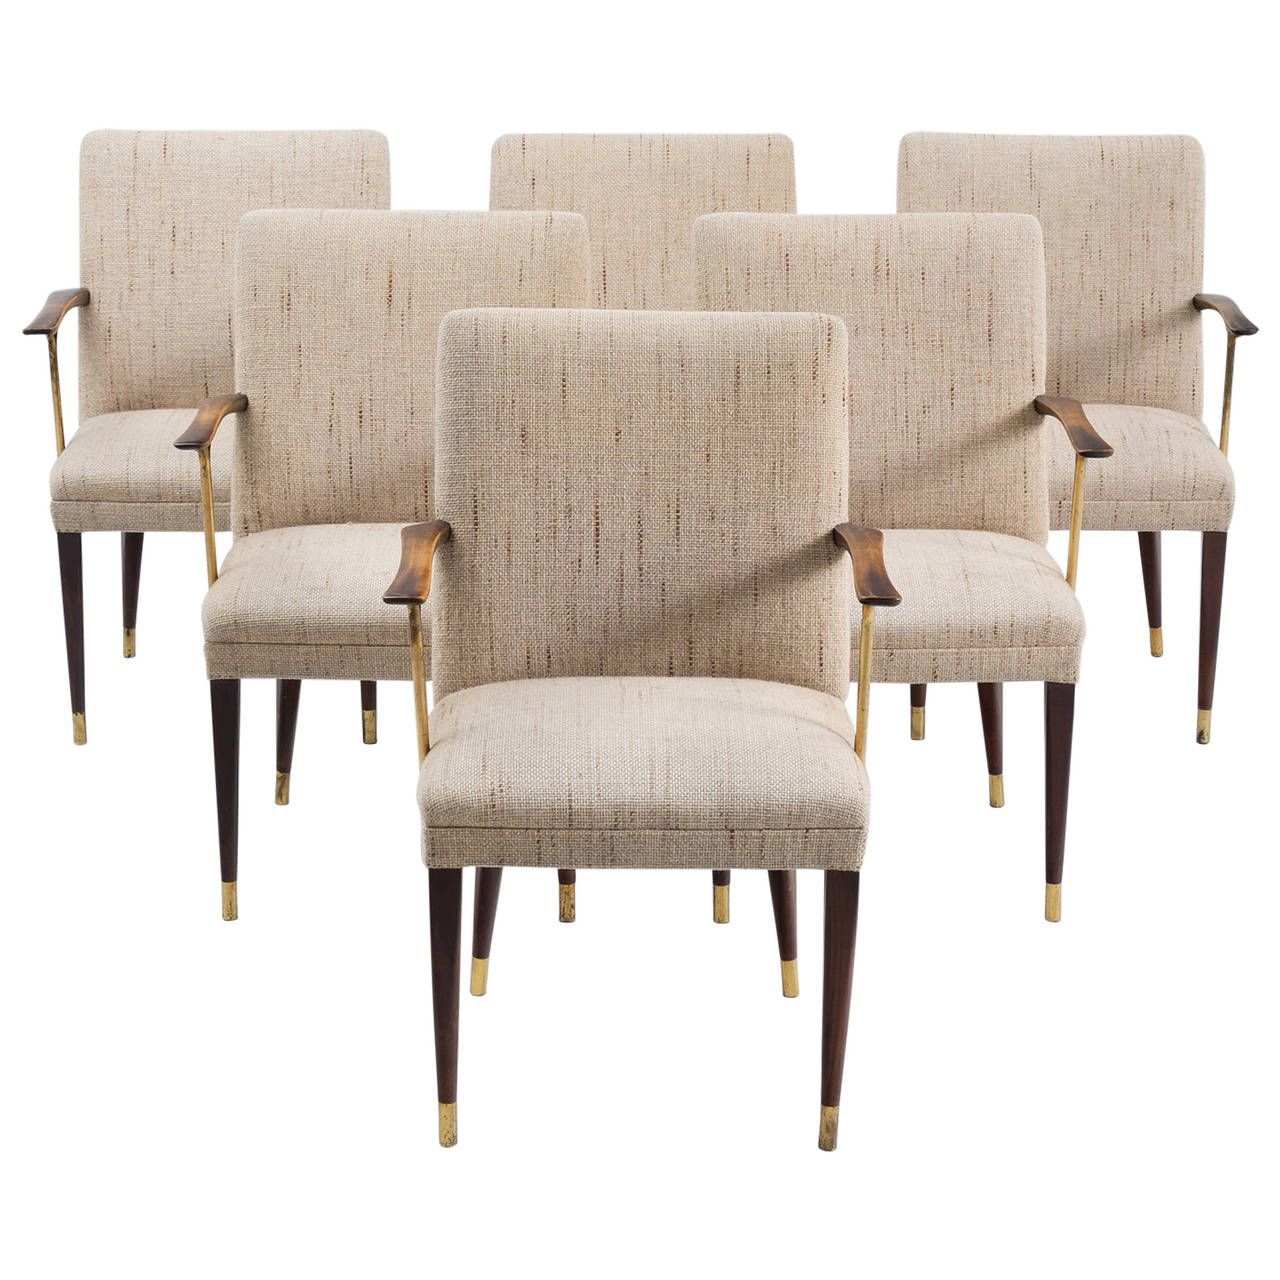 room set of six dining chairs - Set Of Six Dining Room Chairs